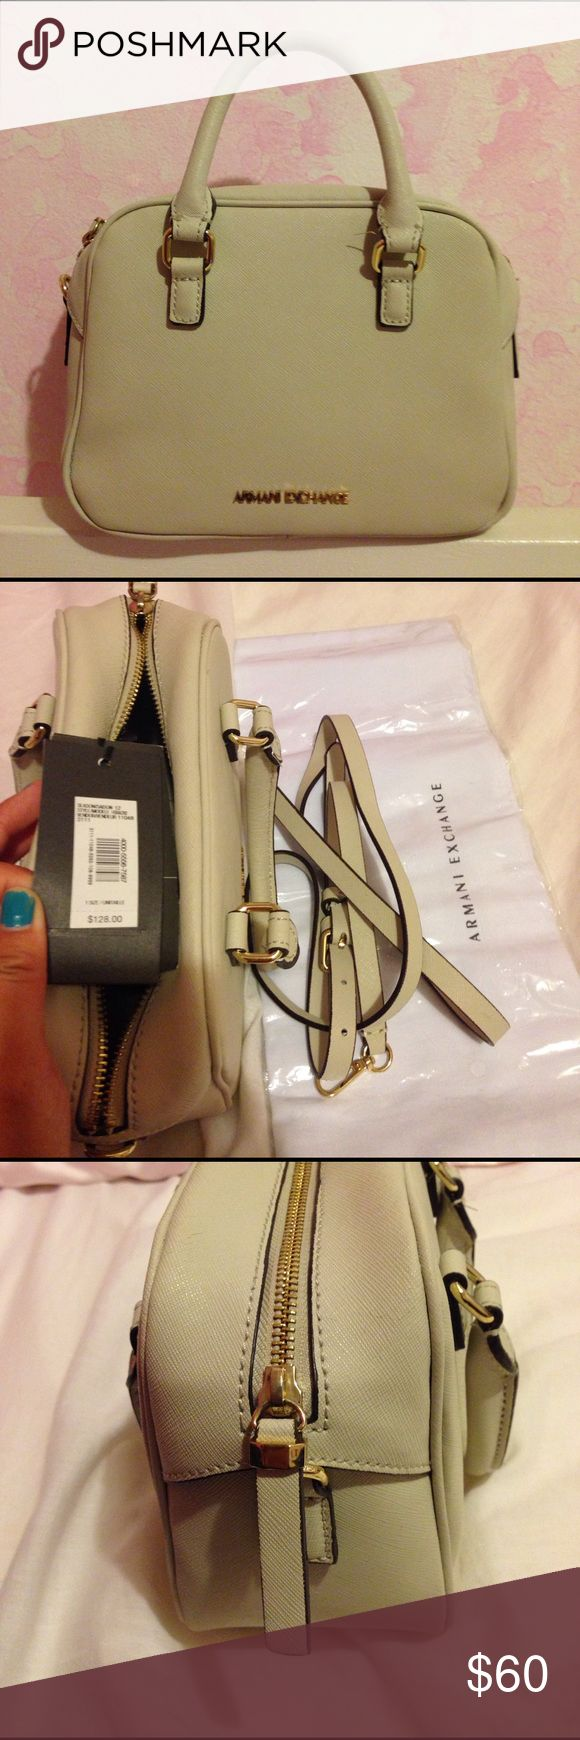 Armani Exchange Mini Saffiano Leather Satchel This purse is in good condition. The leather looks a bit cracked near the opening though on one of the sides and I still kept the tags after all these years. It comes with a dust bag and straps. (From a drug free home) A/X Armani Exchange Bags Satchels